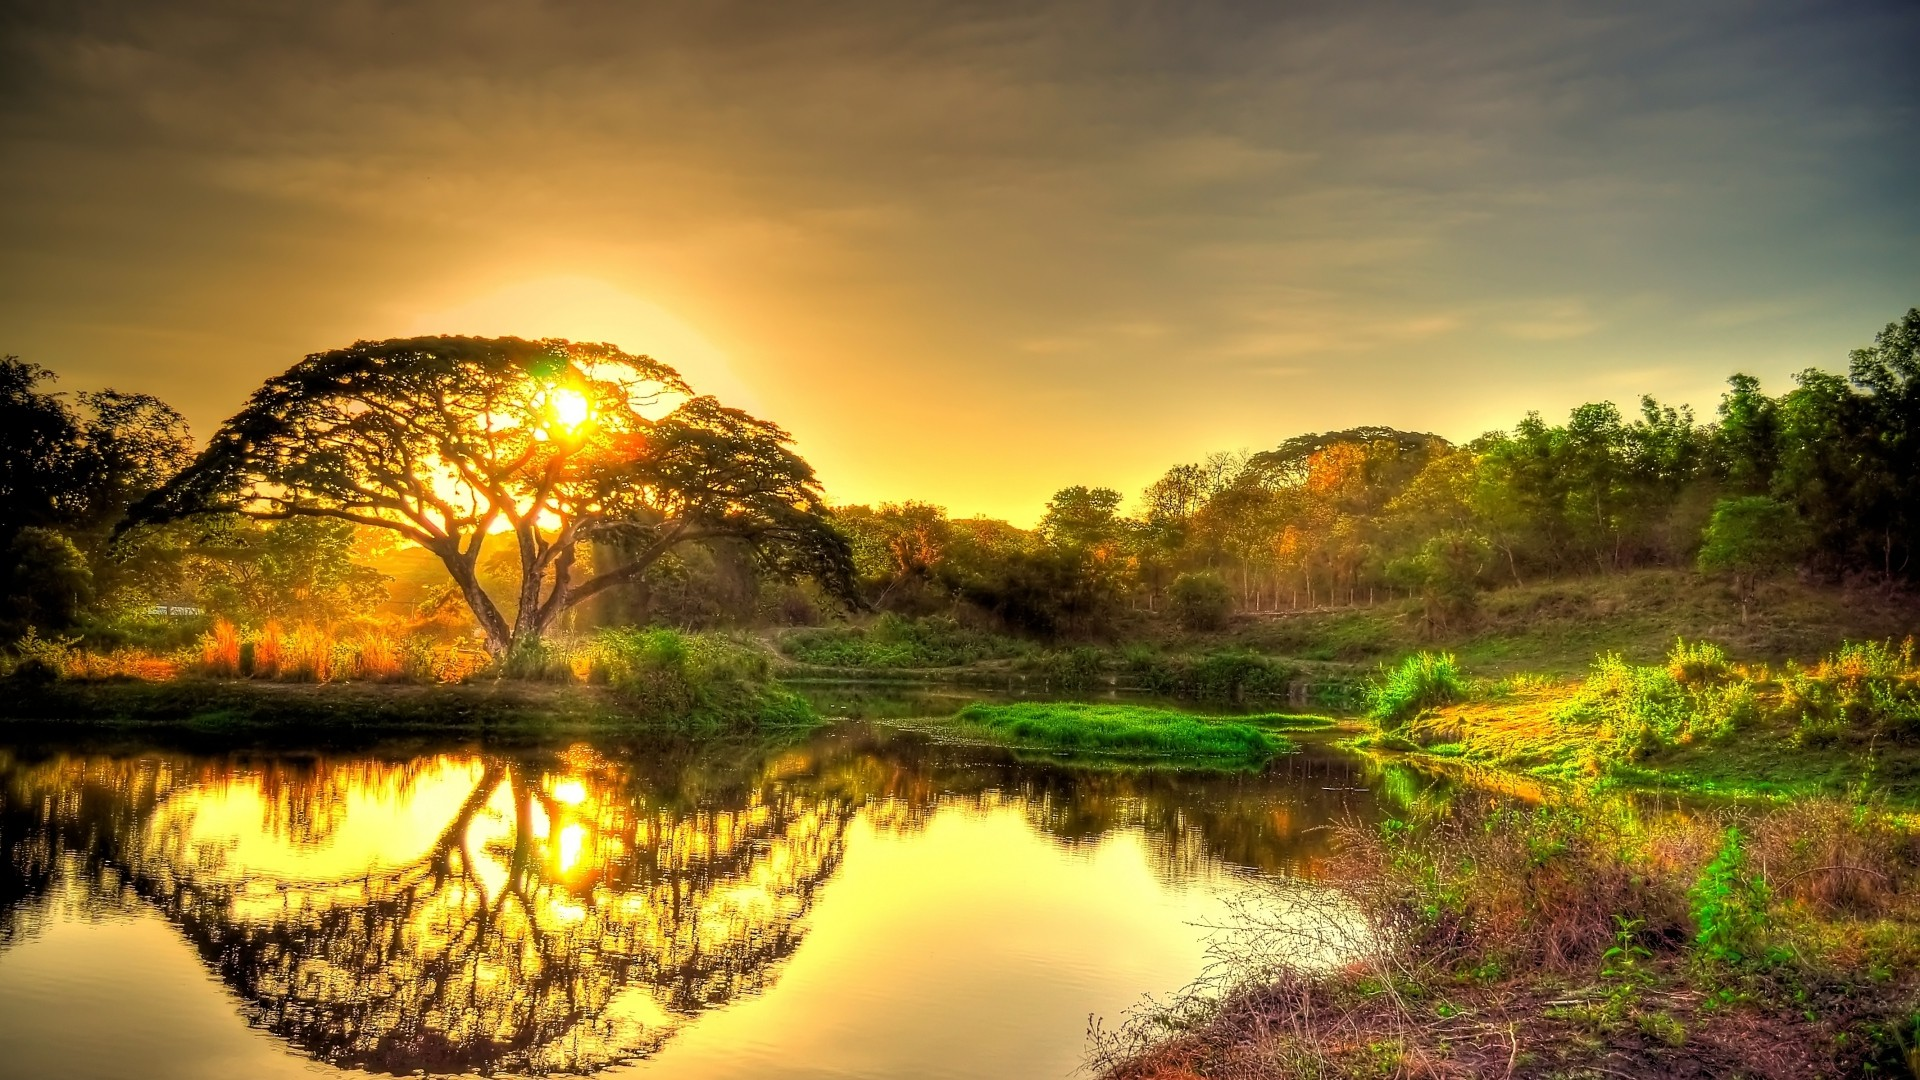 1920x1080, Backgrounds Of Nature   Data Id 145096   - Hd Landscape Wallpapers 1080p - HD Wallpaper